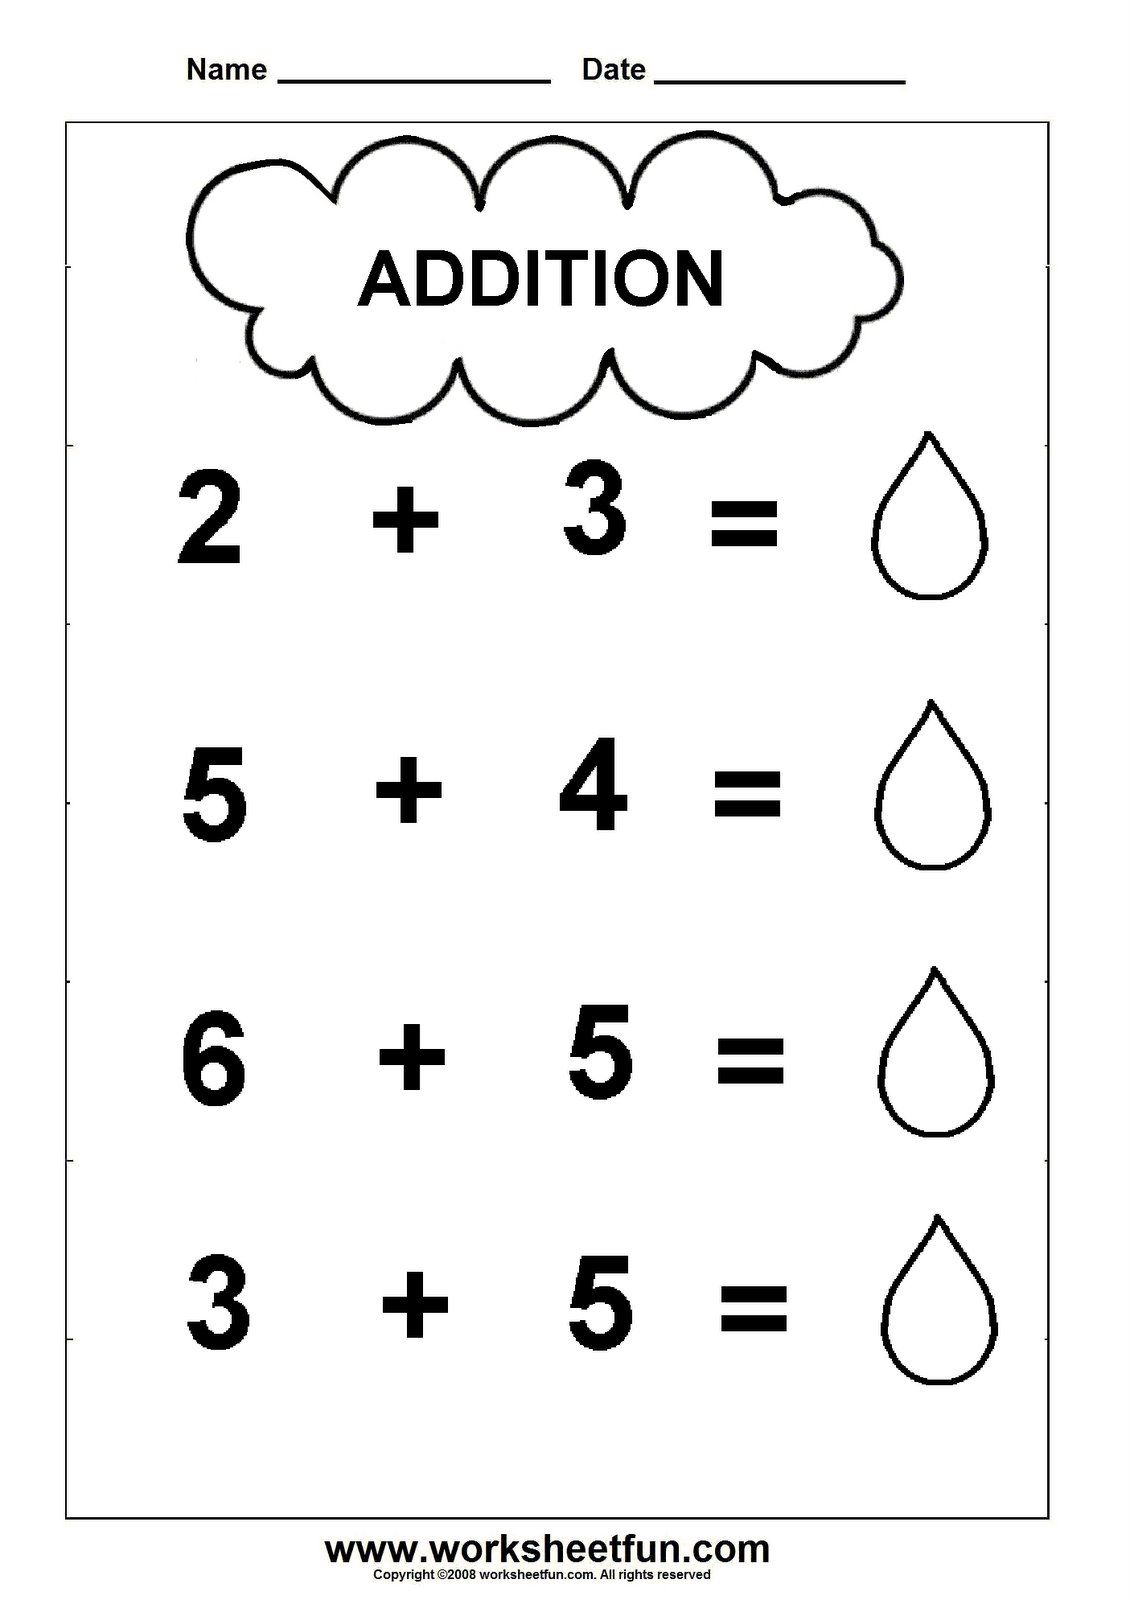 Pre k addition worksheets addition worksheet cloud theme 1 pre k addition worksheets addition worksheet cloud theme 1 1 digit robcynllc Images